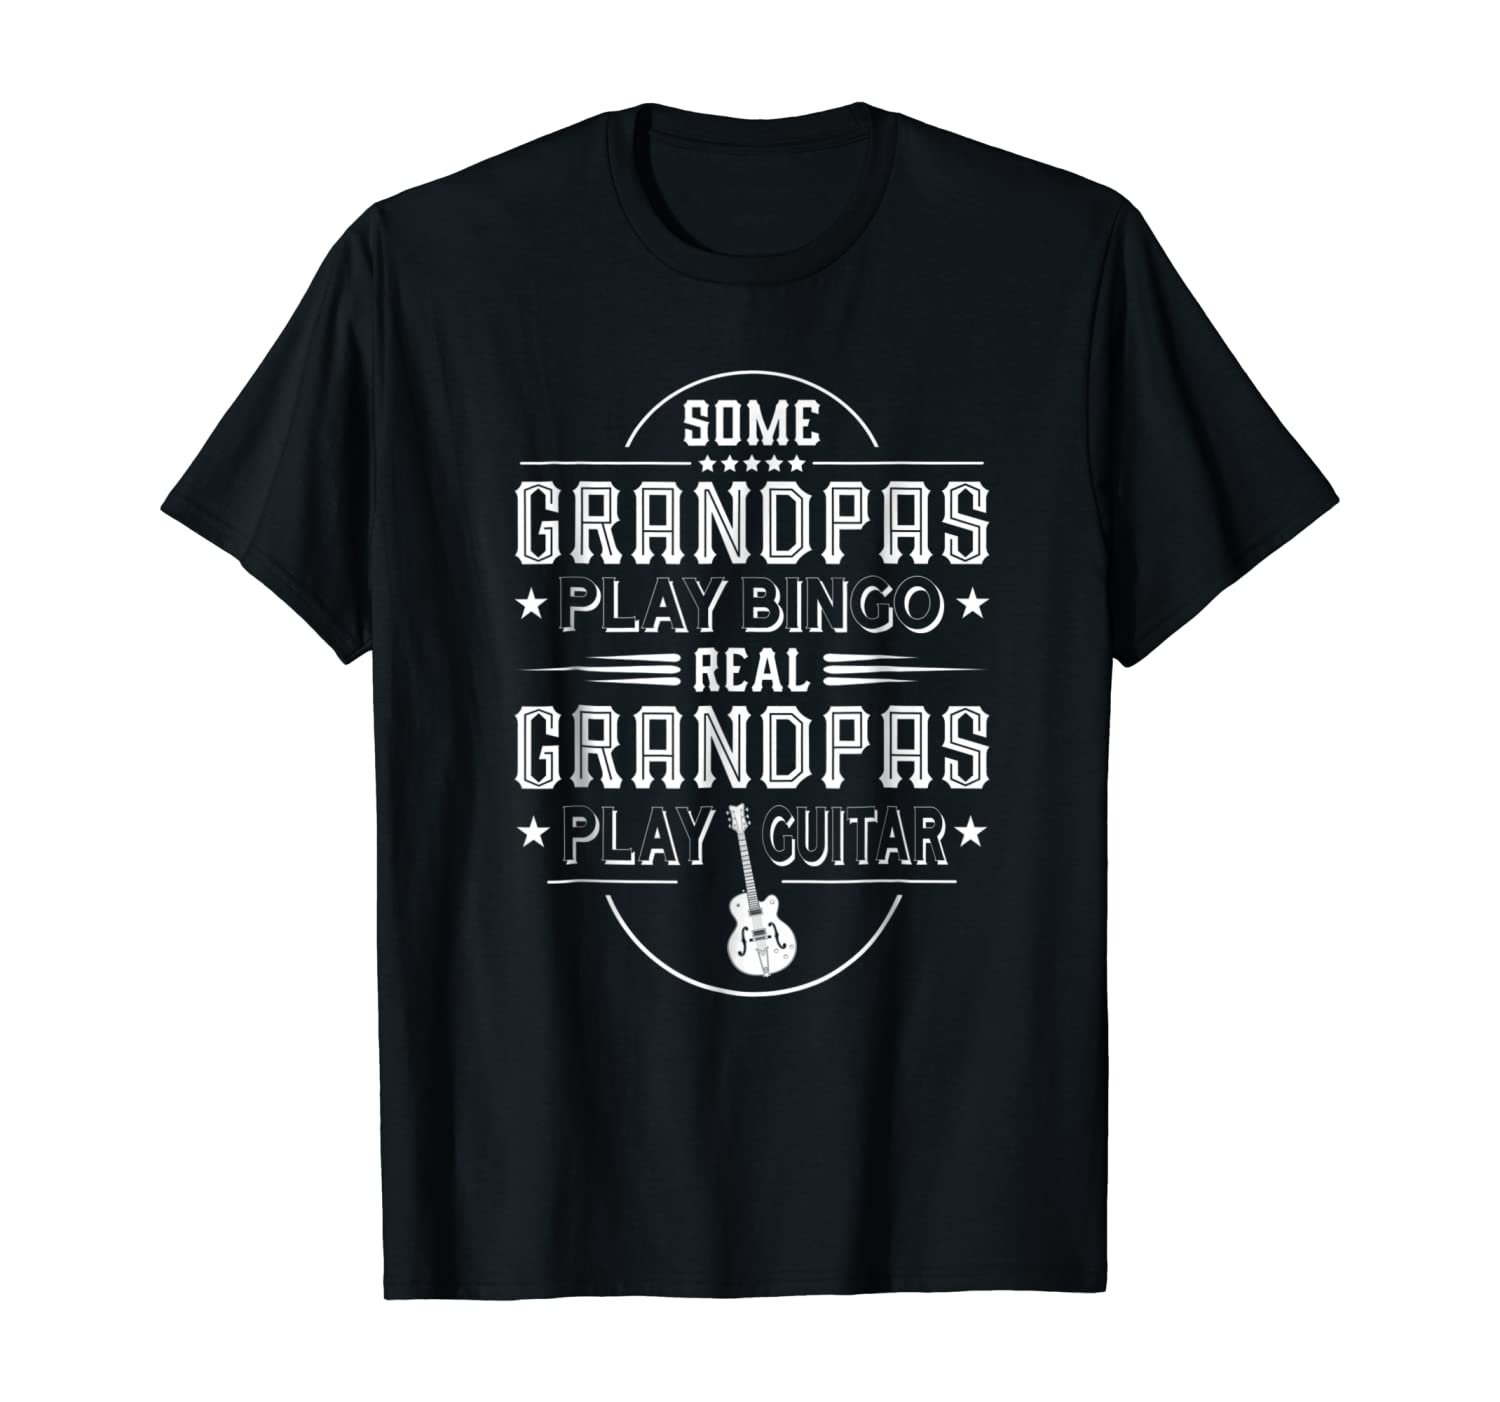 Funny Fathers Day Gift - Real Grandpas Play Guitar T-shirt